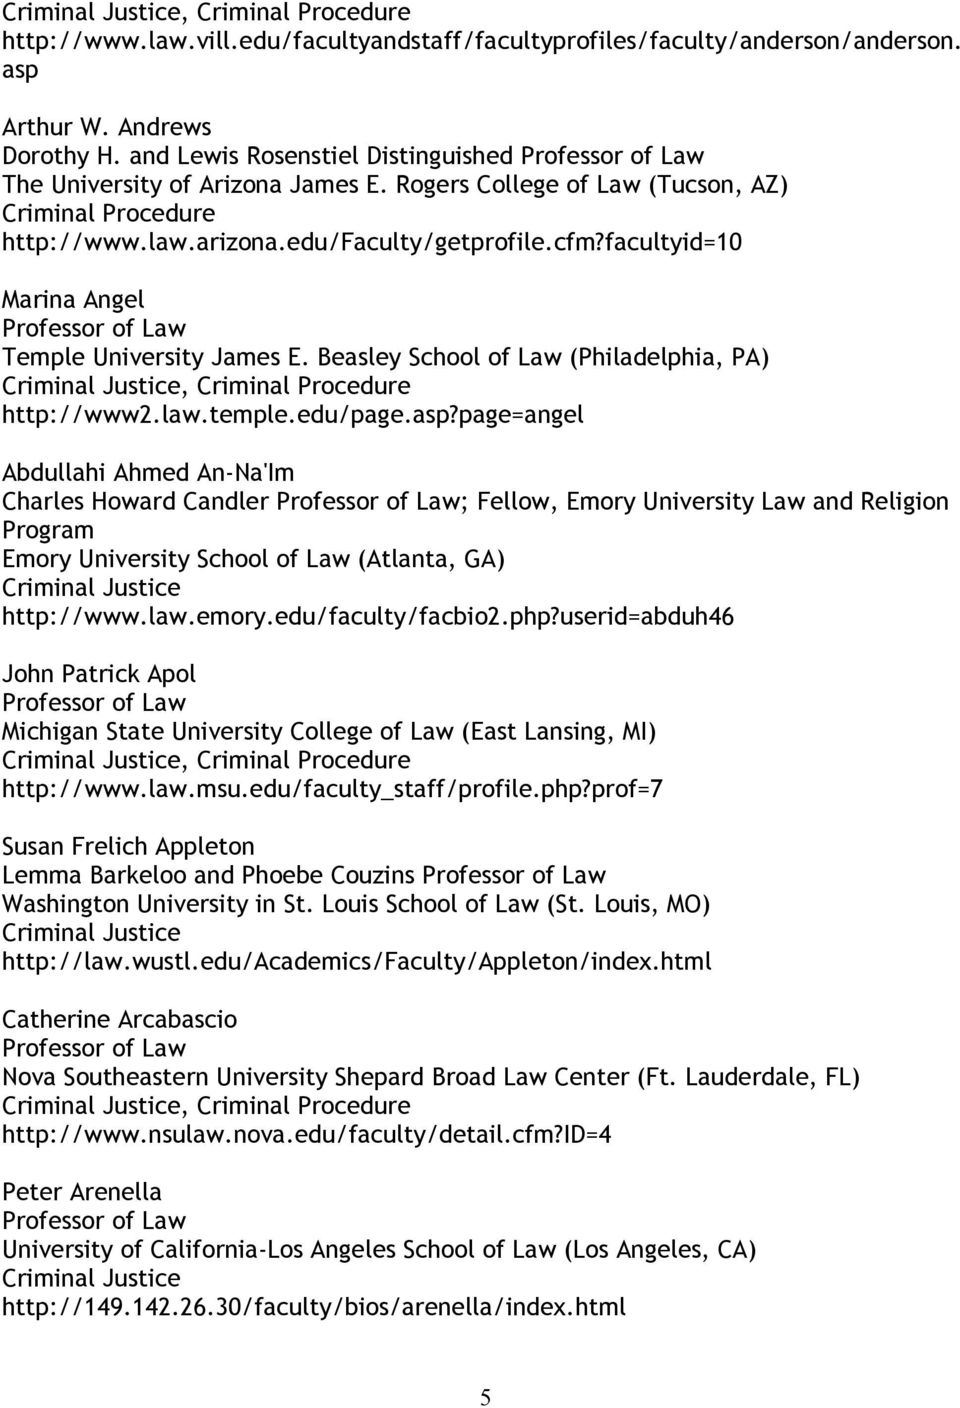 edu/page.asp?page=angel Abdullahi Ahmed An-Na'Im Charles Howard Candler ; Fellow, Emory University Law and Religion Program Emory University School of Law (Atlanta, GA) http://www.law.emory.